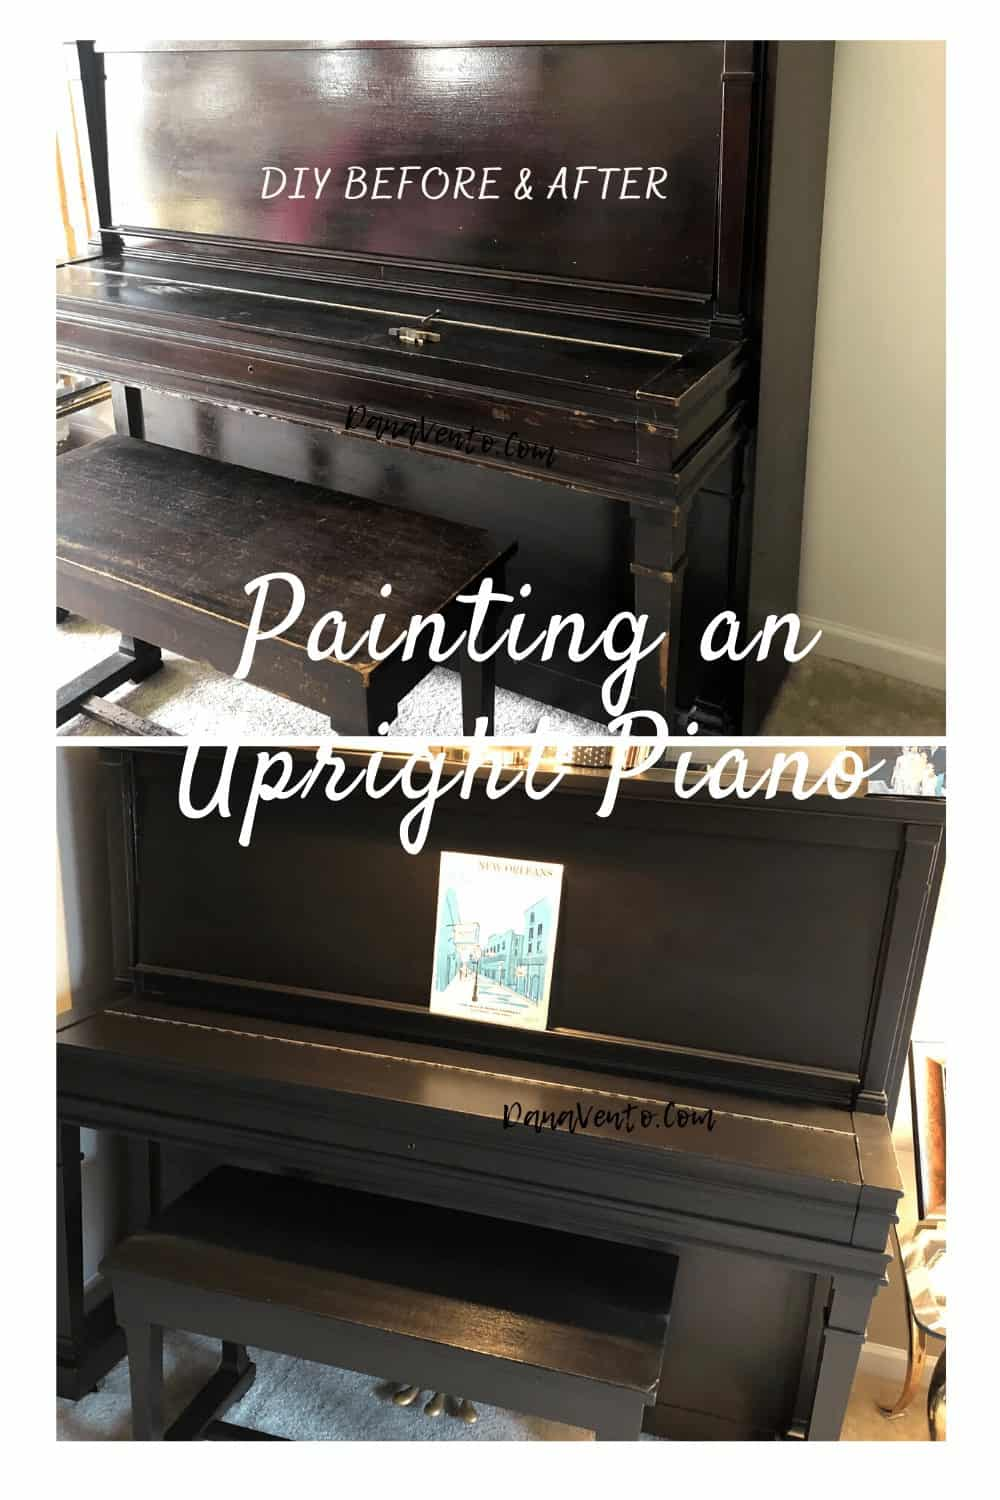 BEFORE AND AFTER PHOTOS OF PIANO BEFORE BEING PAINTED